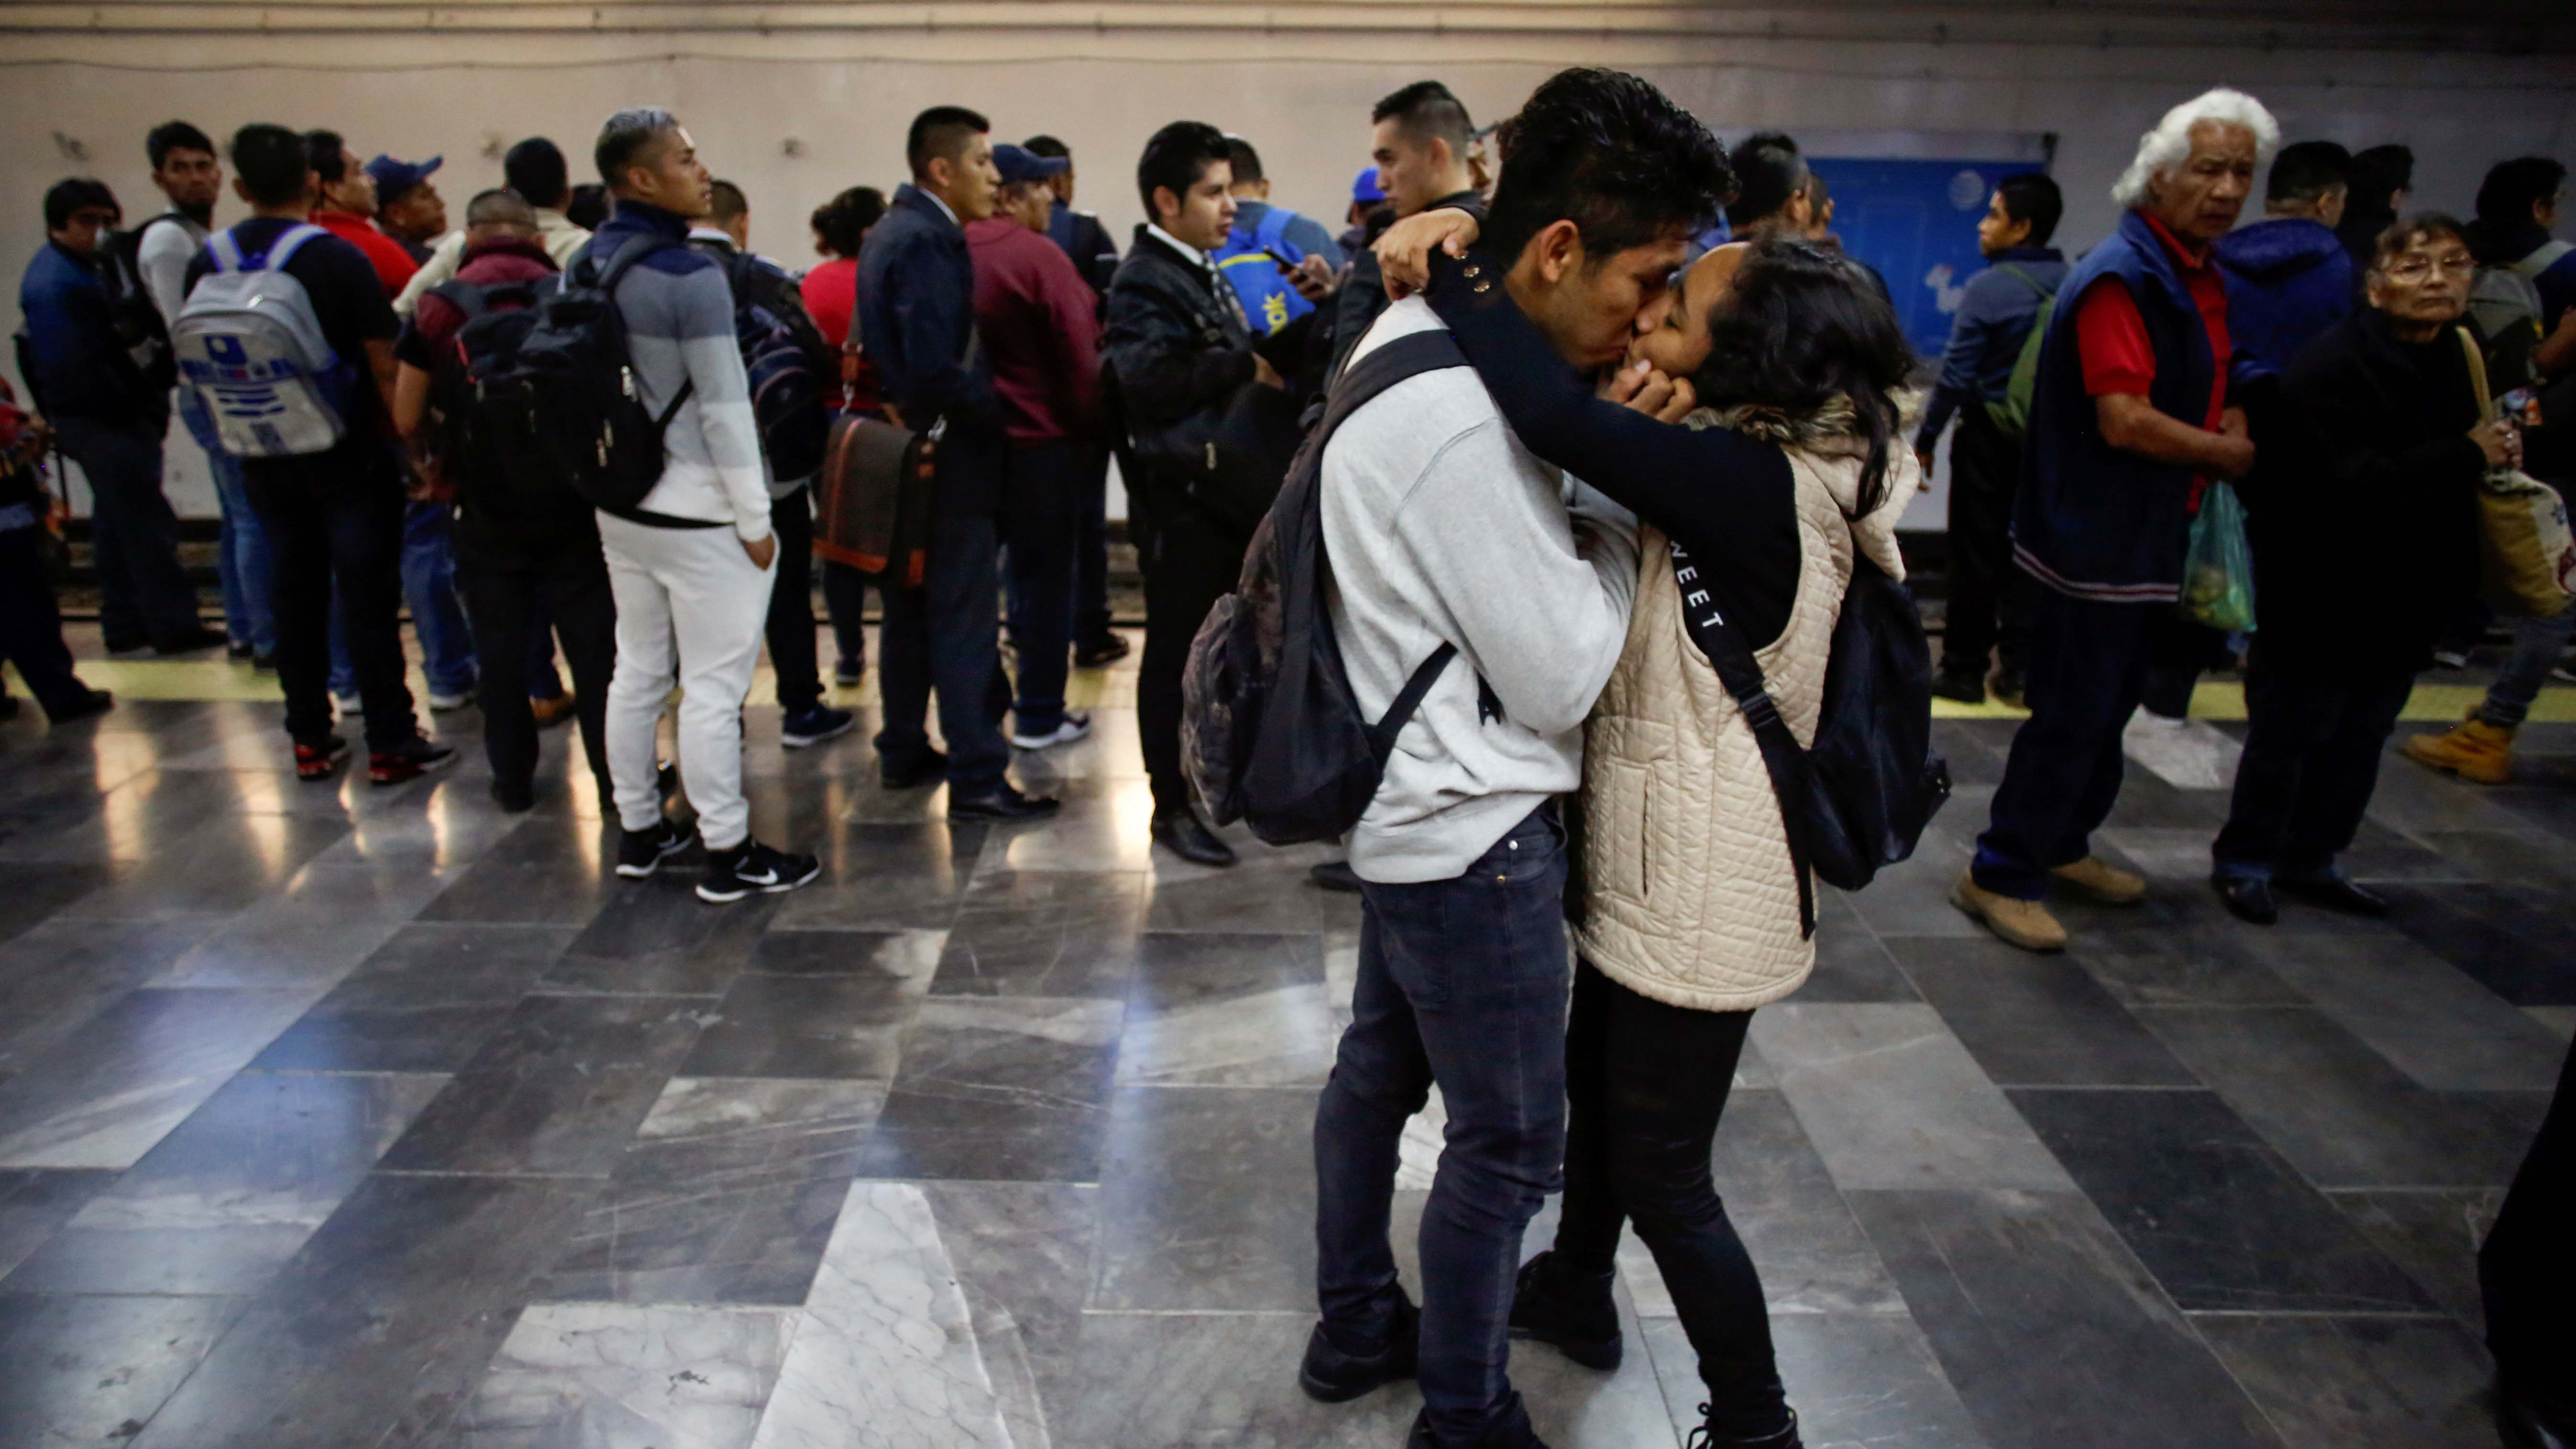 A couple kiss in the Pantitlan metro station as Mexico's government is seeking to minimize public disruption in its response to the coronavirus disease (COVID-19), in Mexico City, Mexico, on March 17, 2020.